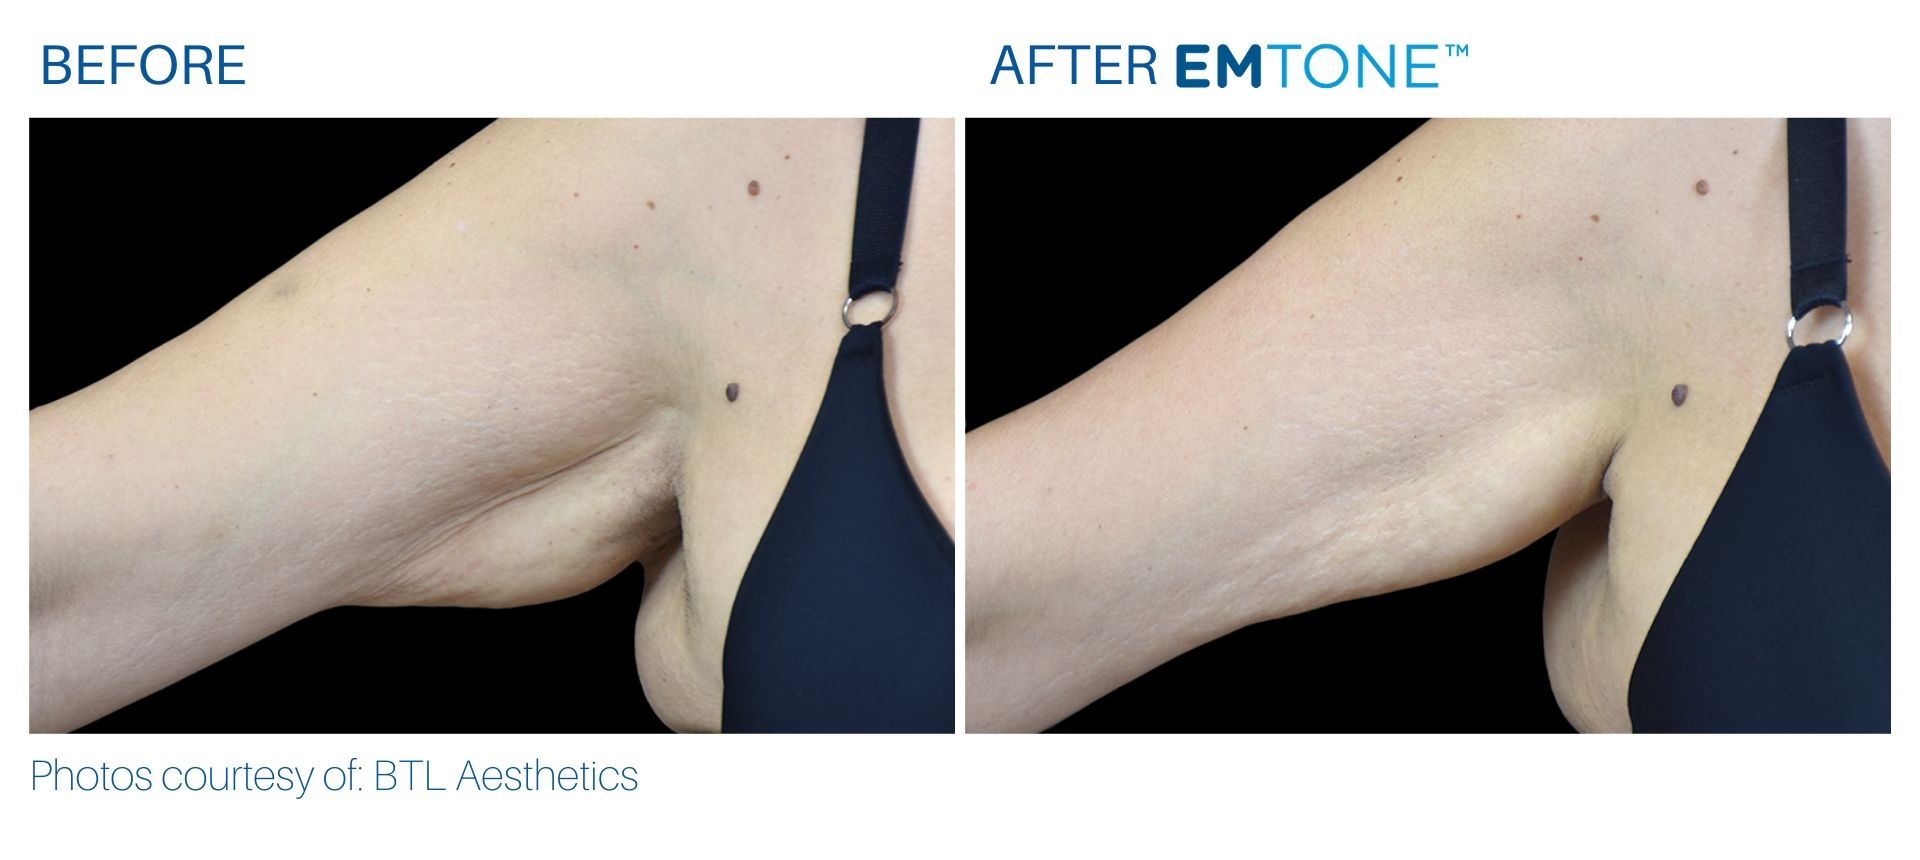 Emtone arms before and after result BodyMorphMD